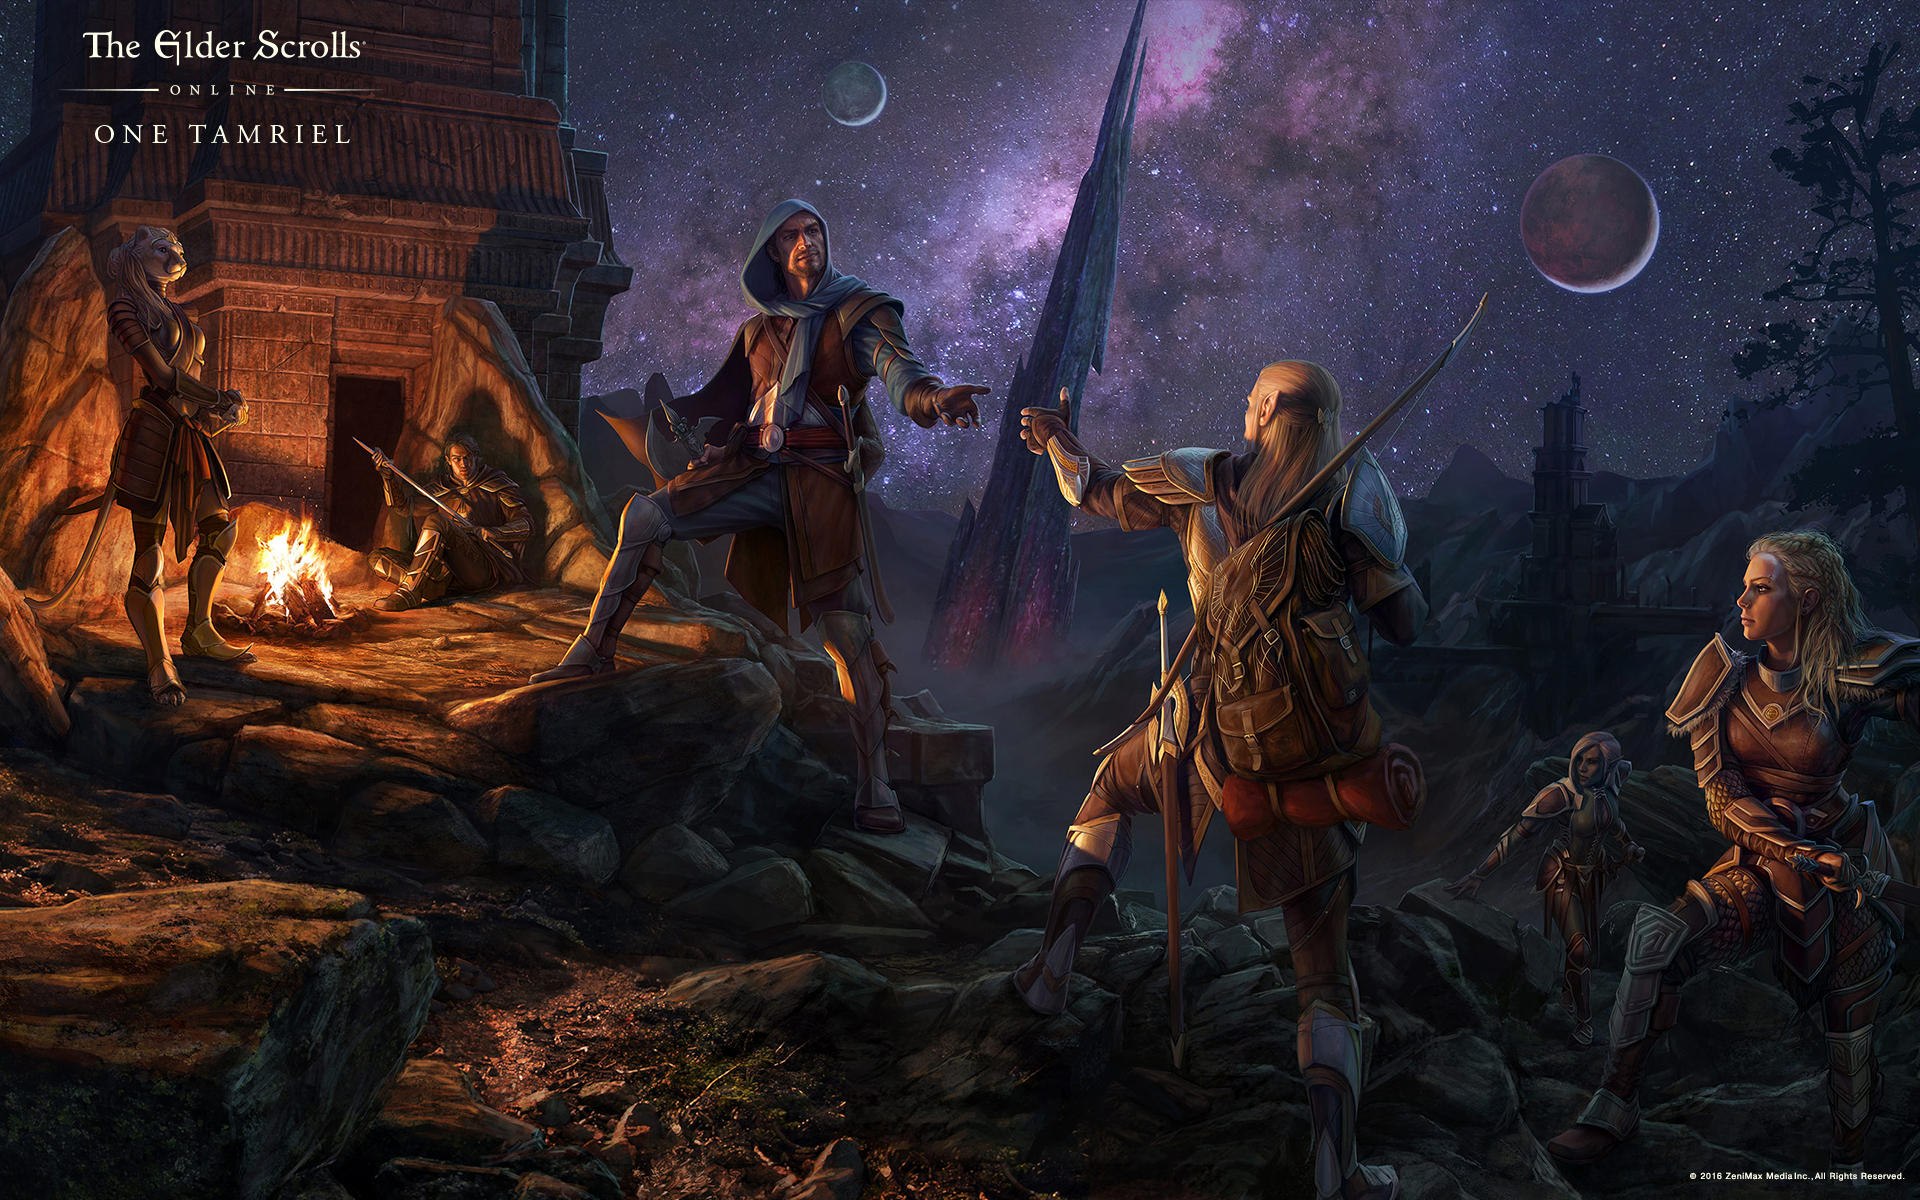 The Elder Scrolls Wallpaper: Update 12 Brings Players Together In One Tamriel For PC